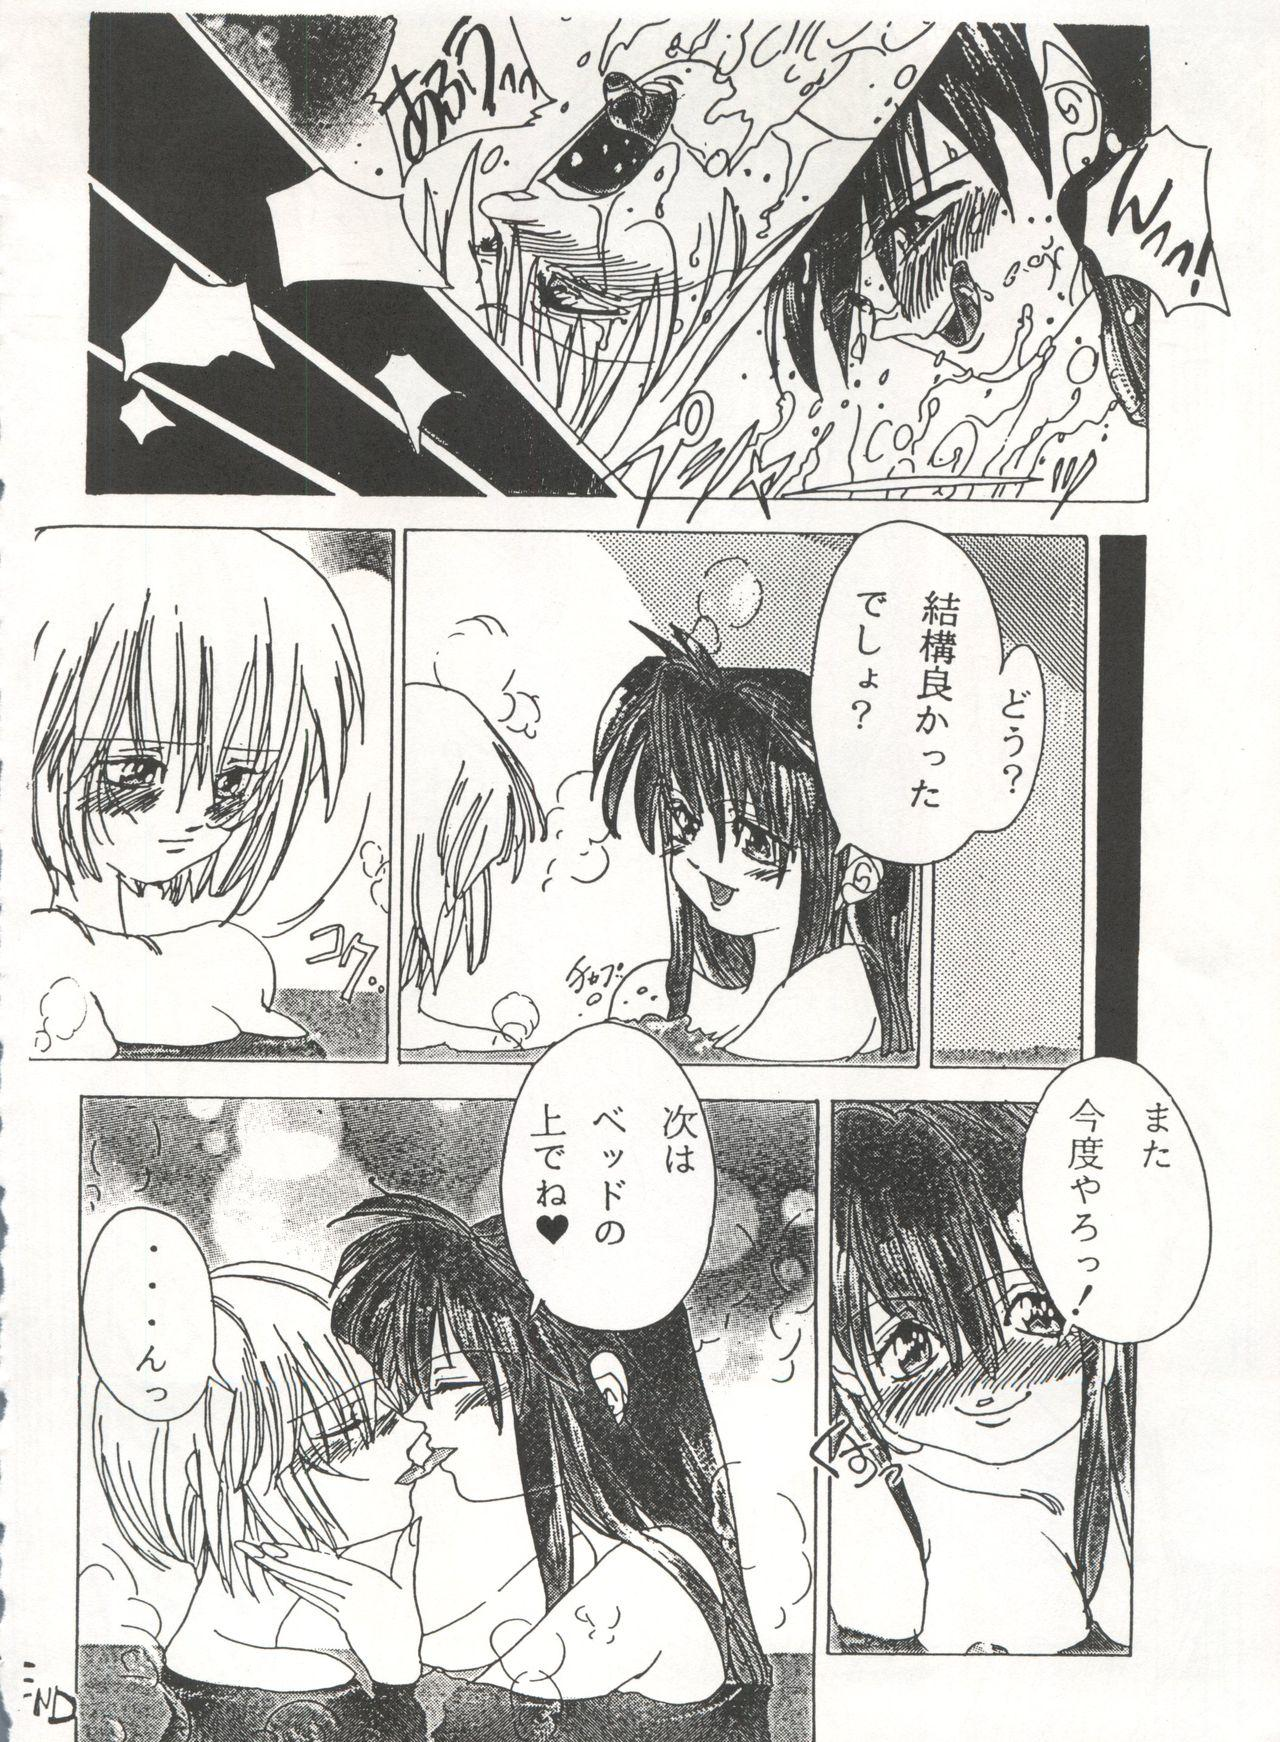 MOUSOU THEATER 6 + 23